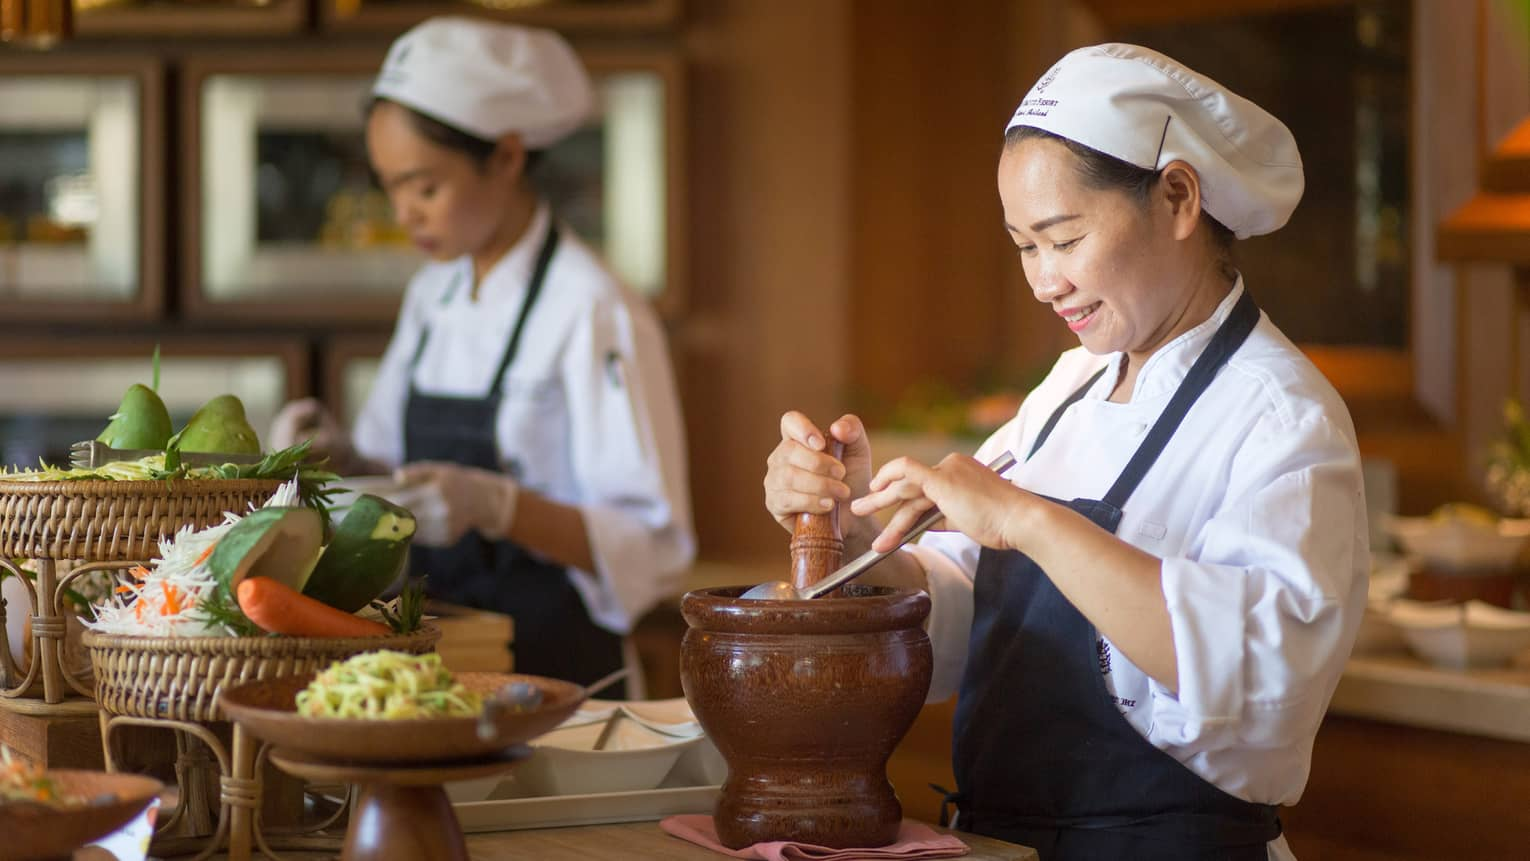 Two chefs in uniform prepare authentic Thai cuisine dishes at counter with fresh vegetables